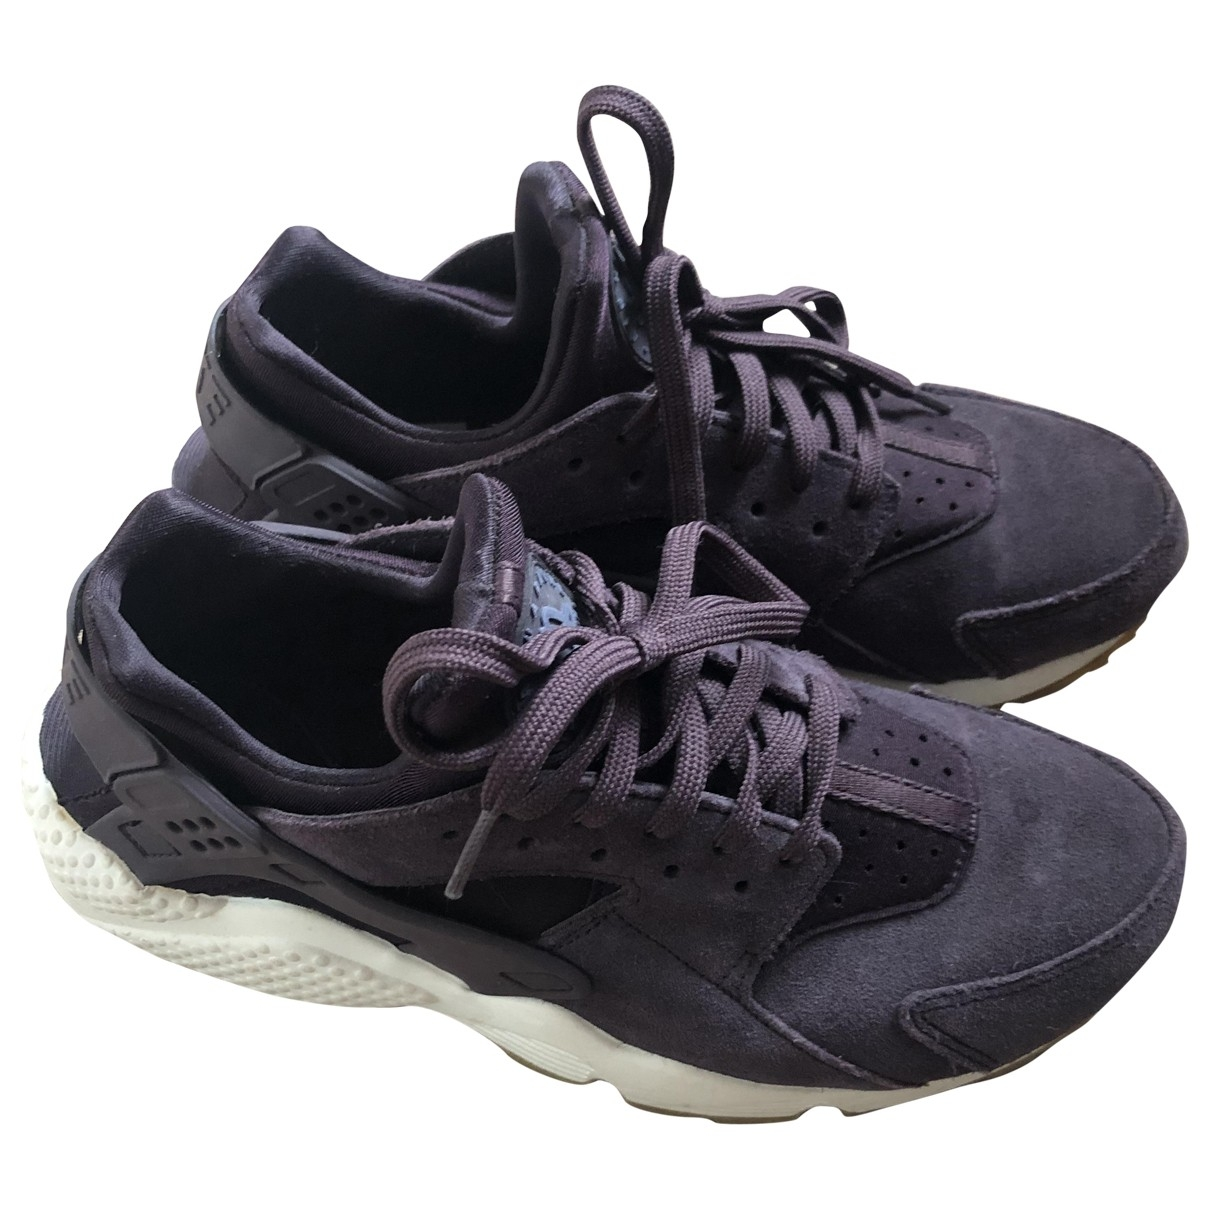 Nike Huarache Purple Rubber Trainers for Women 40.5 EU